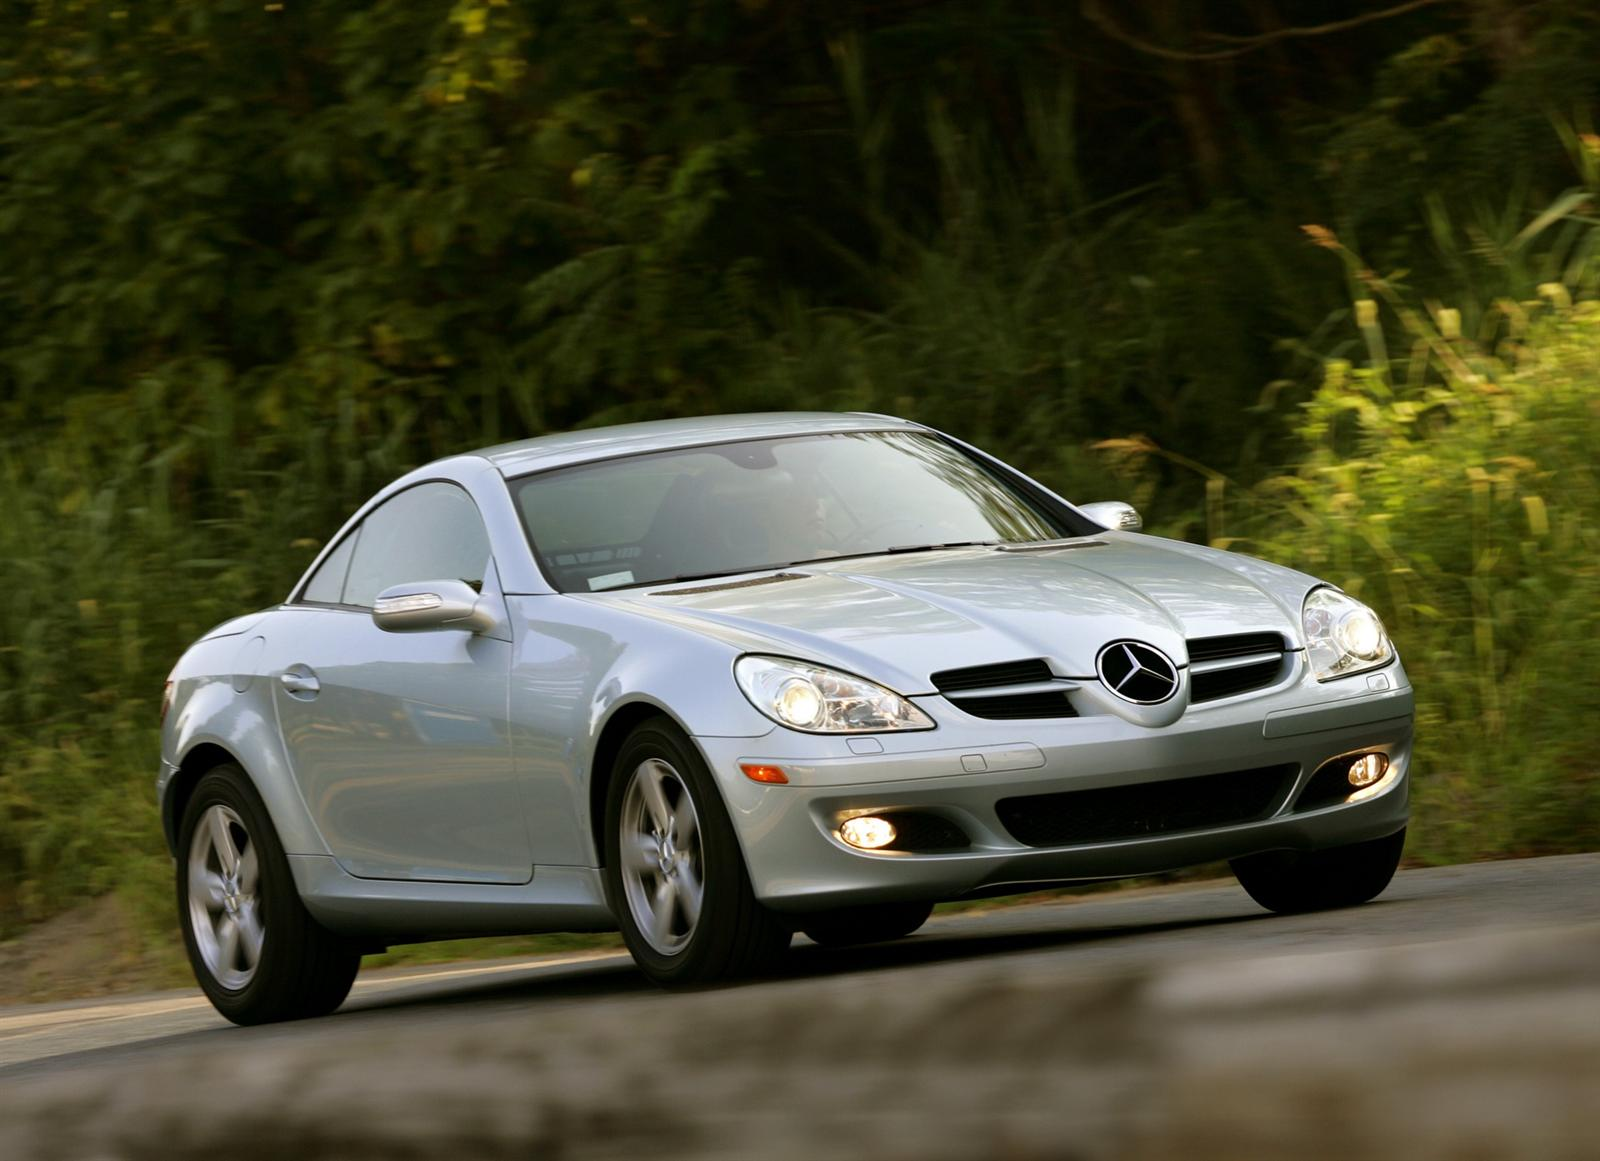 Mercedes-Benz SLK 280 photo 15